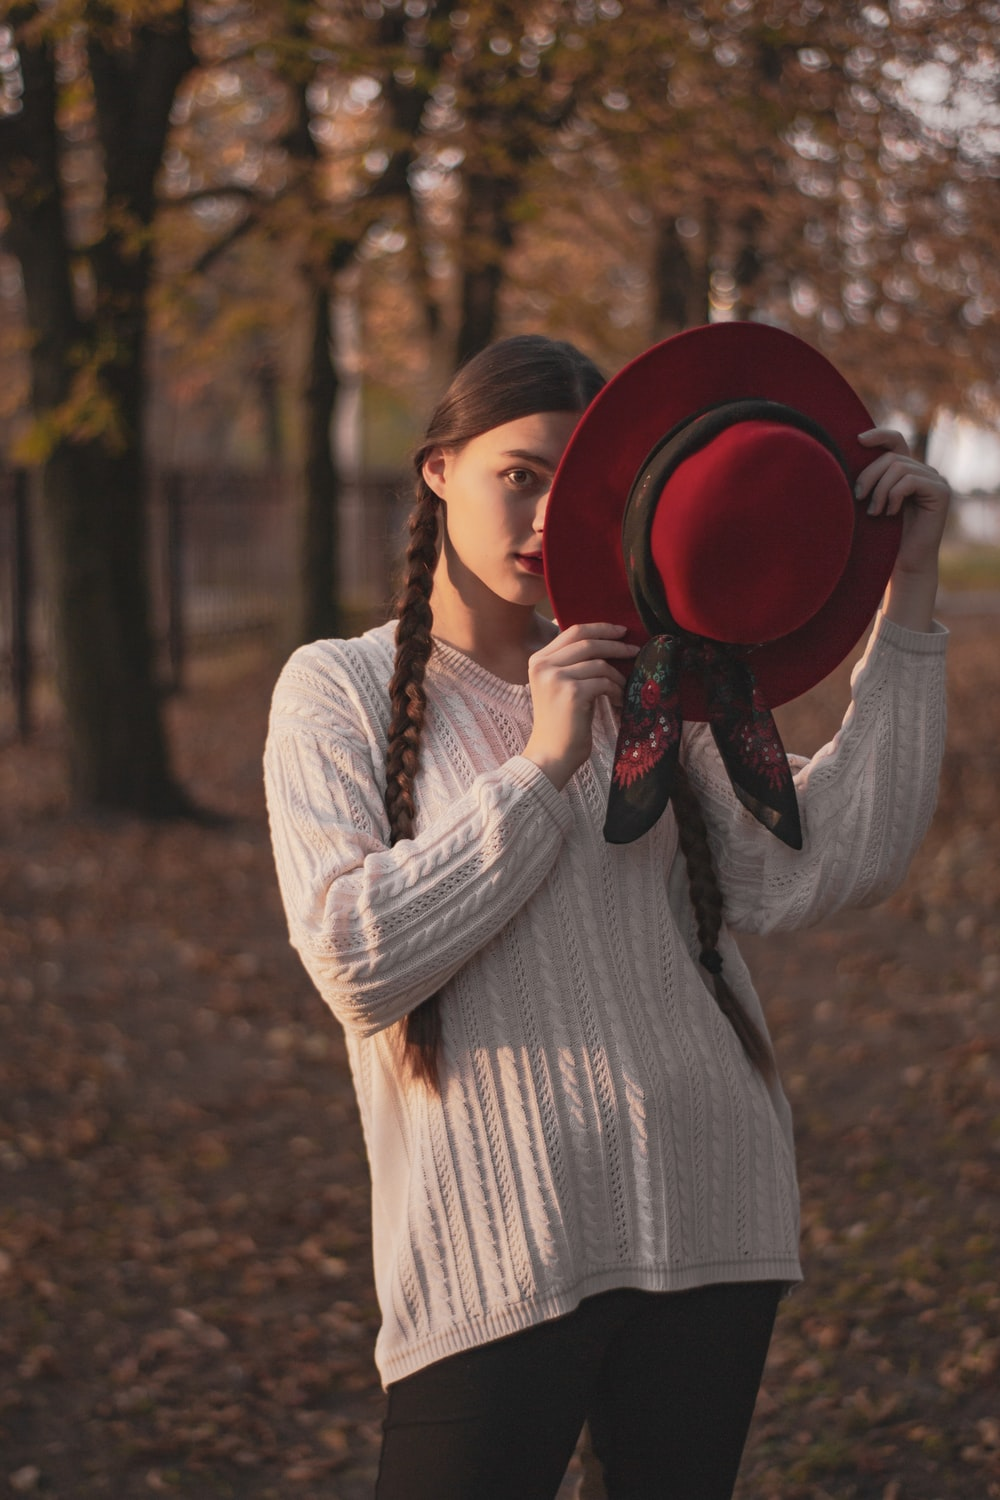 woman in white long sleeve dress holding red hat